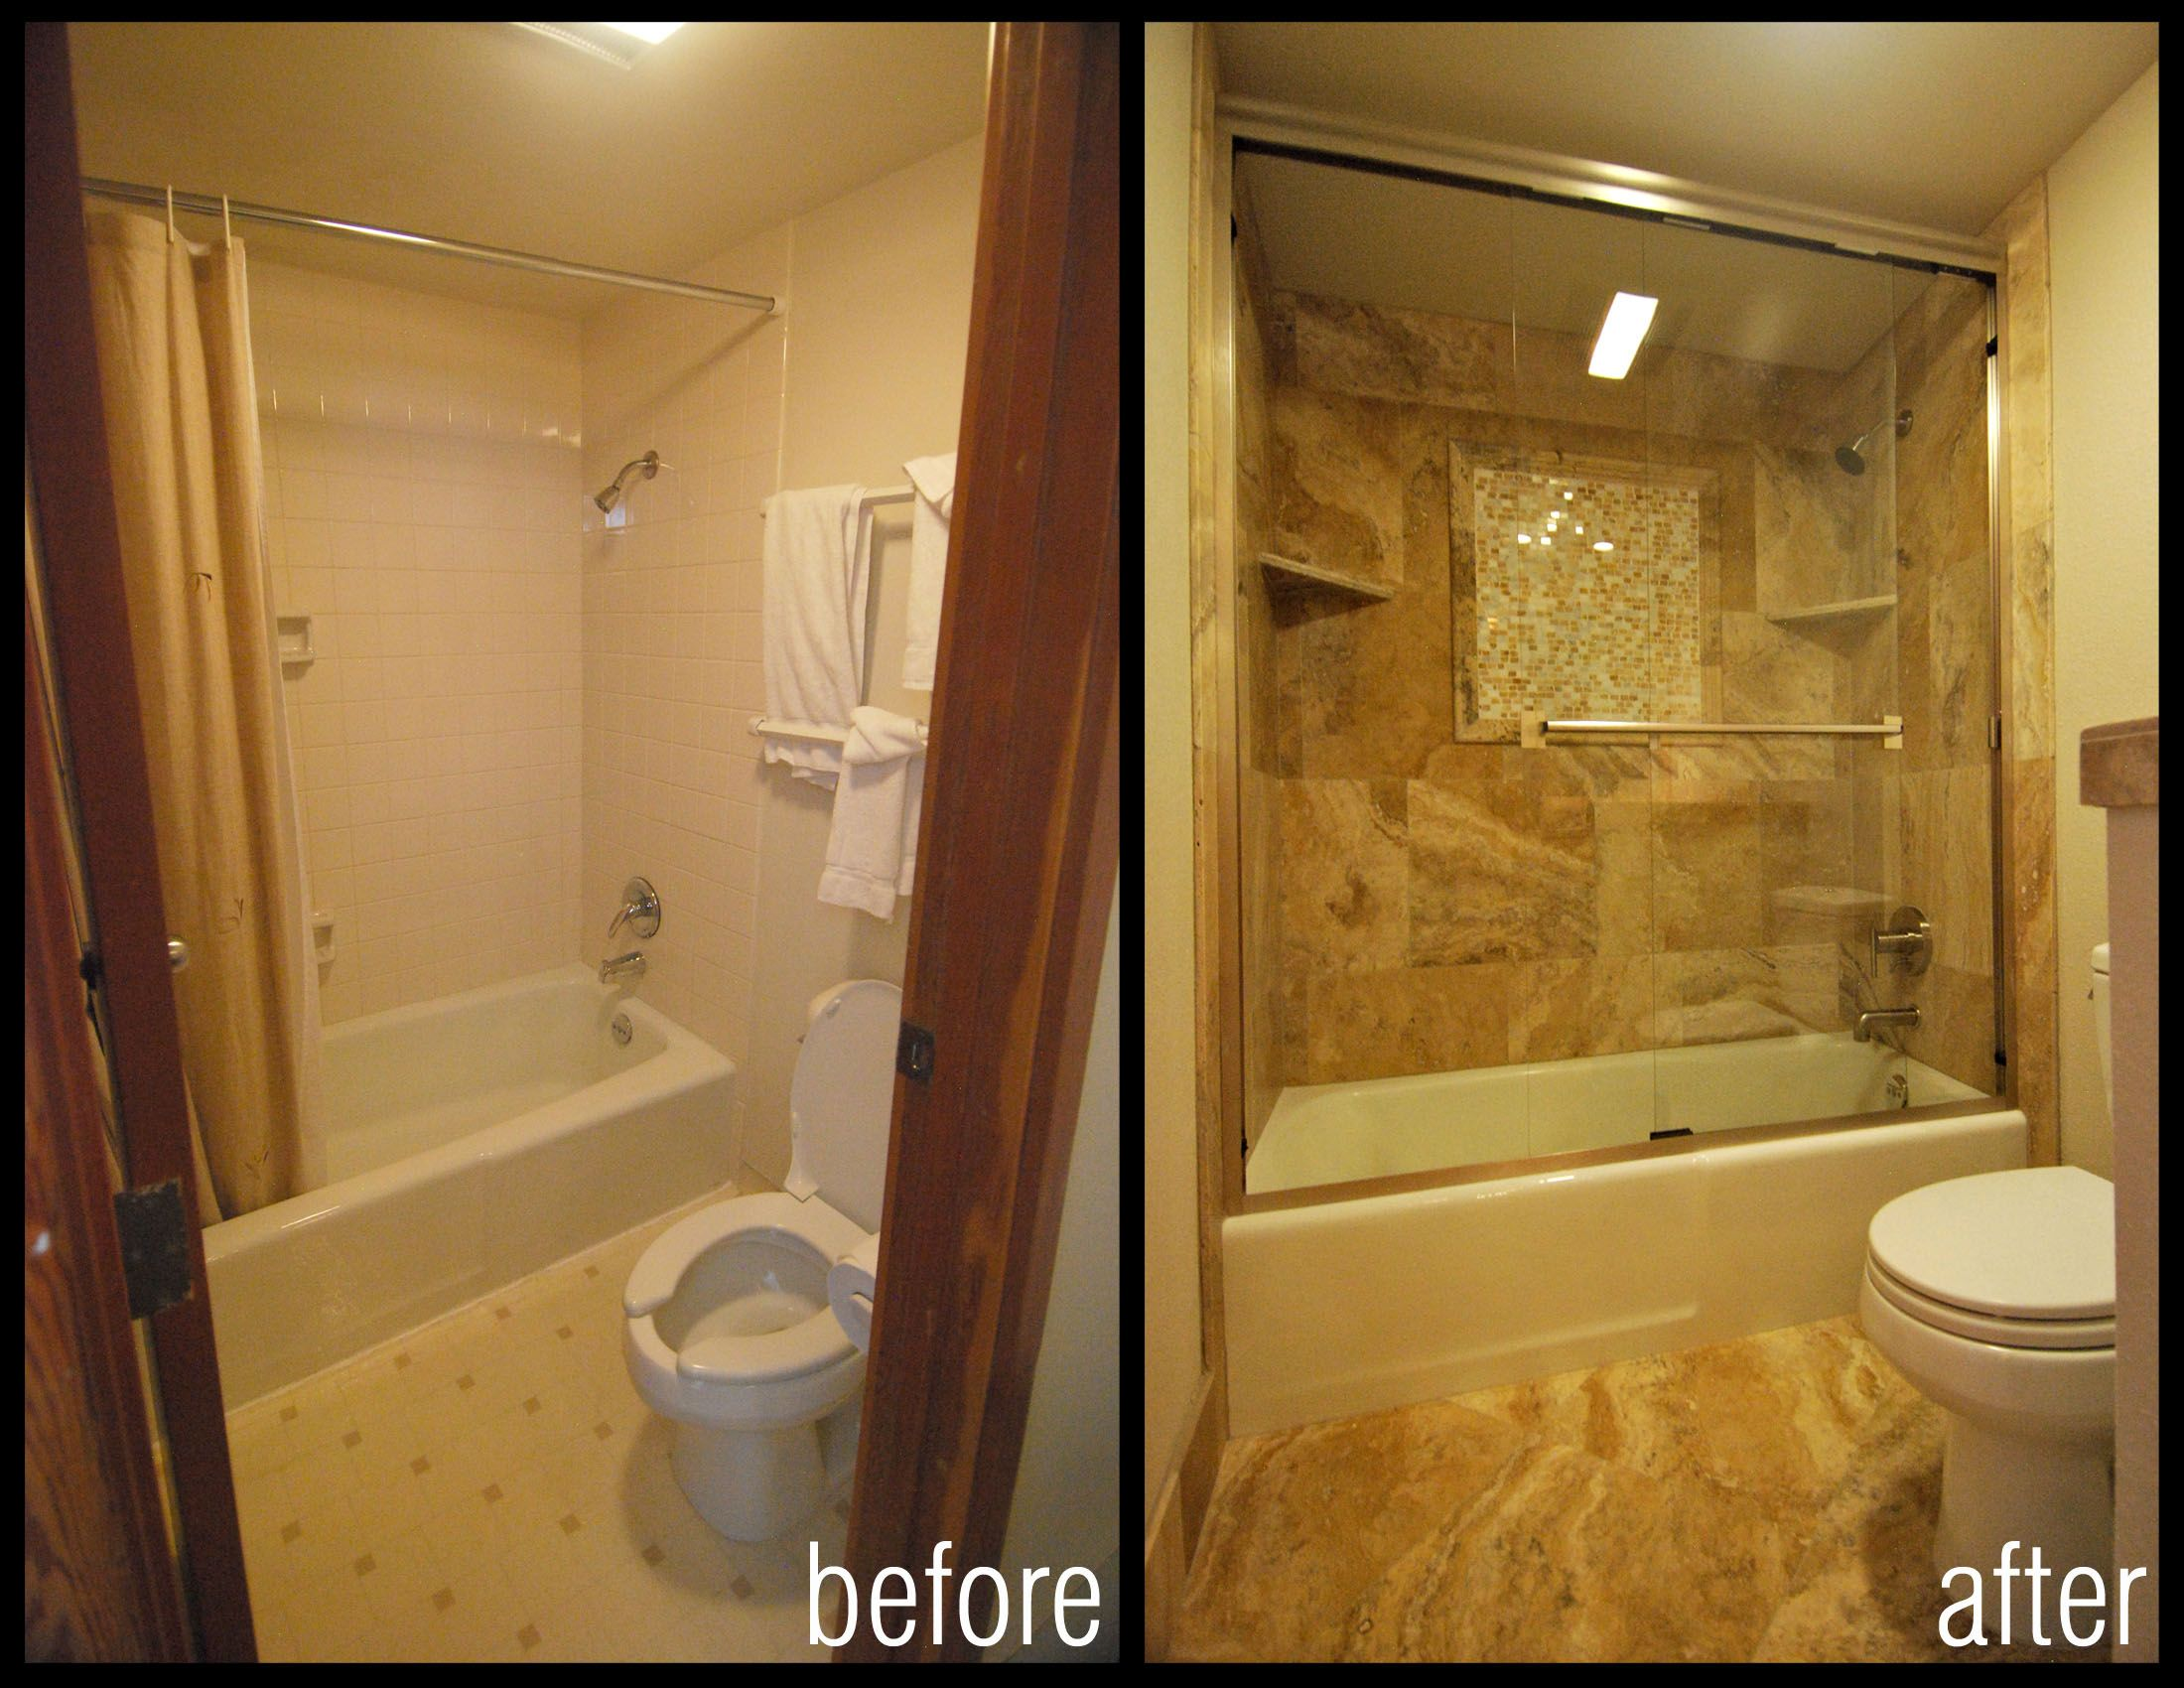 Before and after images of bathroom shower remodels for Home remodeling ideas bathroom